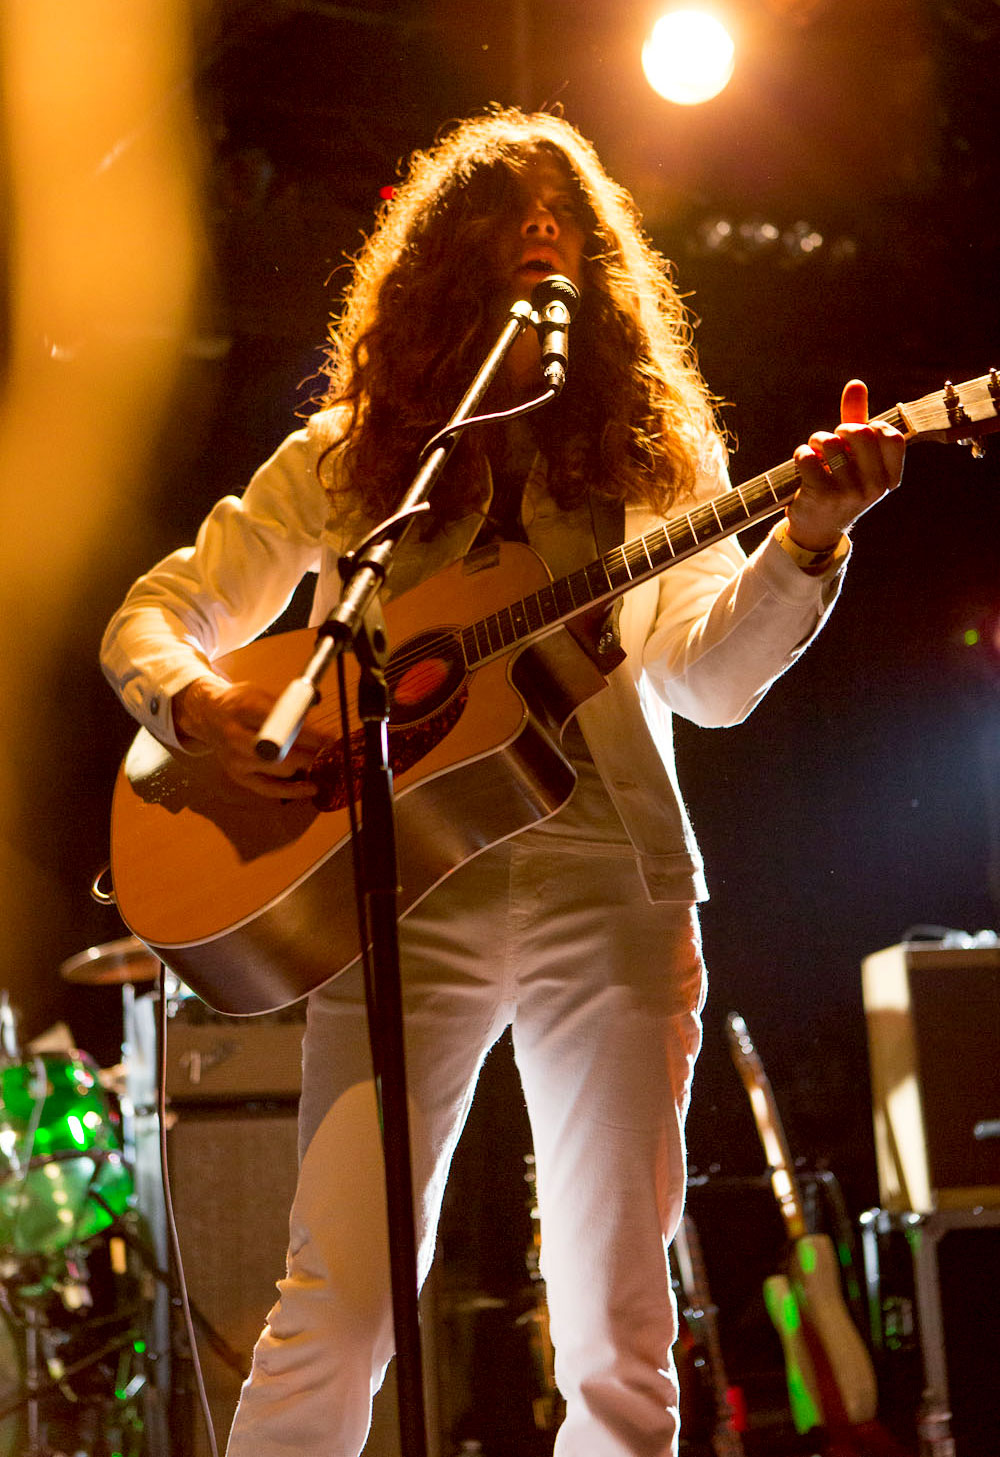 Kurt_Vile_at_echoplex-4